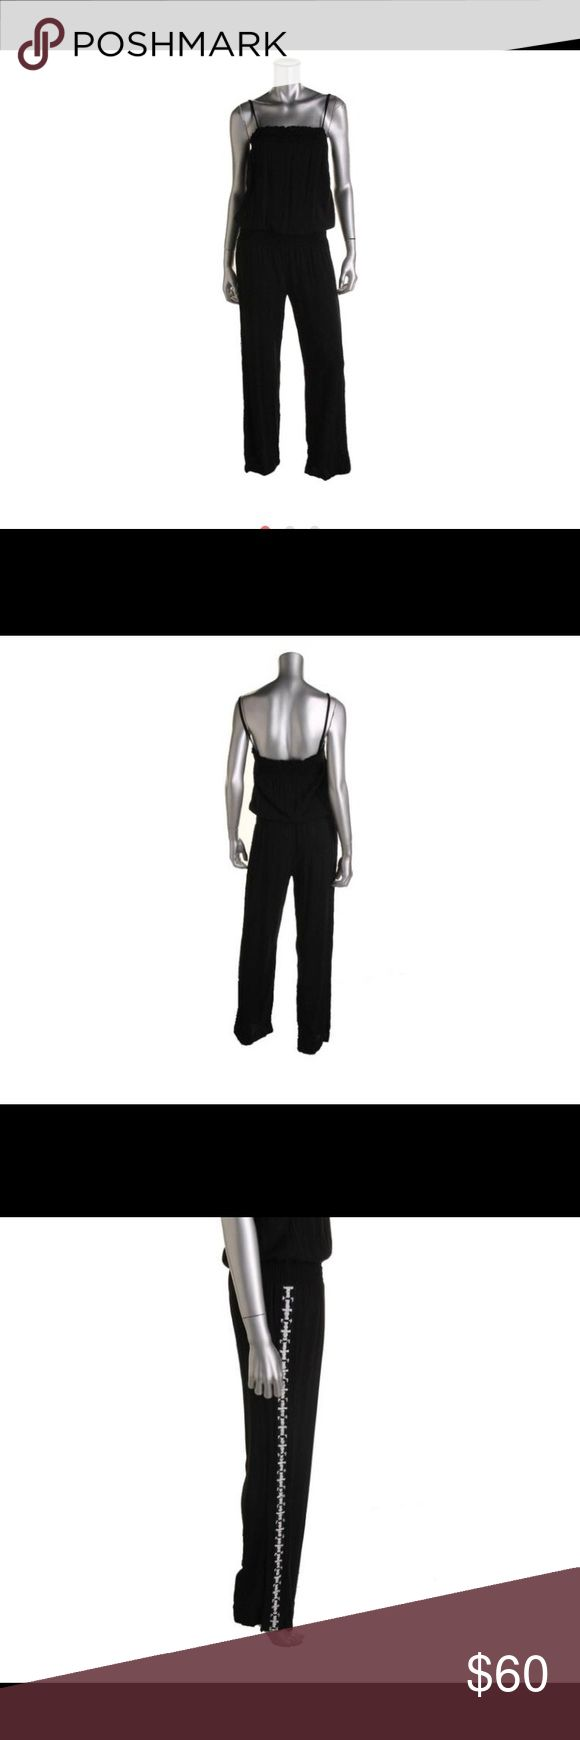 INC  Black-Ivory Beaded Strapless Smocked Jumpsuit INC  Black-Ivory Beaded Strapless Smocked Jumpsuit M  Size Origin: US  Manufacturer Color: Black  Condition: New with tags  Style Type: Jumpsuit  Collection: INC  Neckline: N/A  Sleeve Length: Strapless  Bottom Closure: Pull On  Waist Across: 14 Inches  Inseam: 31 Inches  Rise: 9 1/2 Inches  Bust Across: Inches  Material: 100% Rayon  Fabric Type: Rayon  Specialty: Smocked INC International Concepts Pants Jumpsuits & Rompers